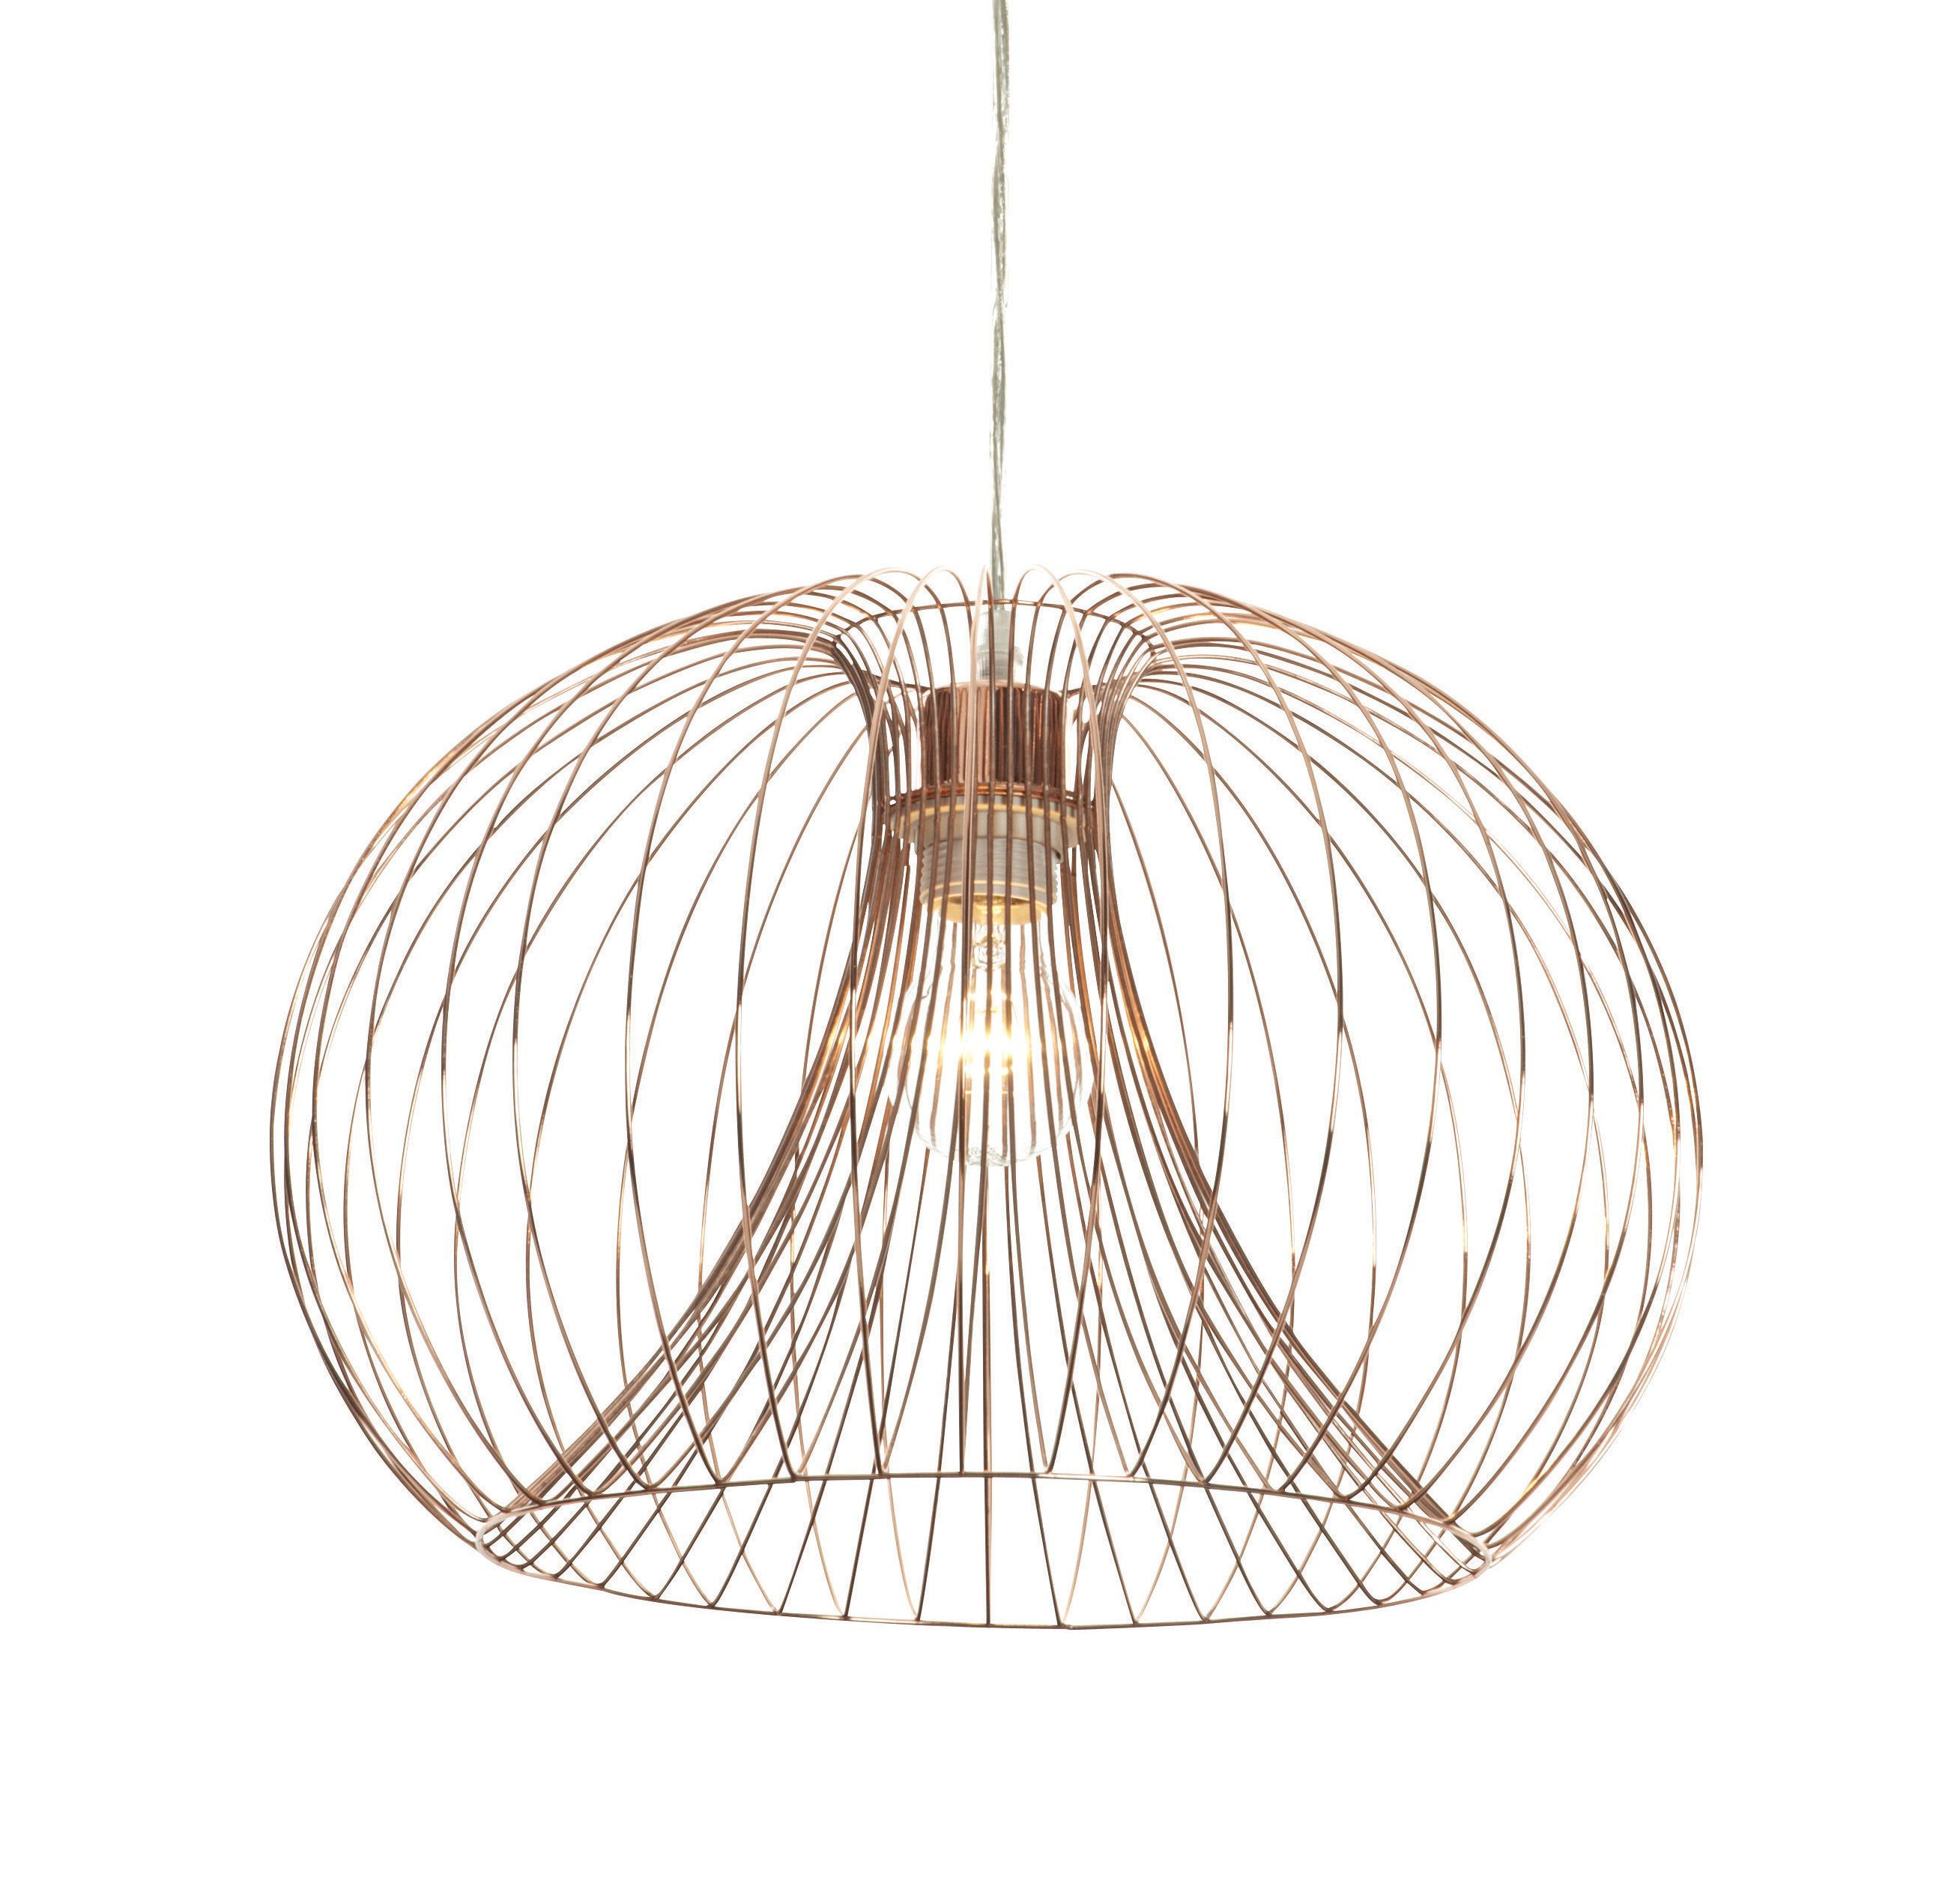 Jonas wire copper pendant ceiling light wire pendant copper wire jonas copper wire pendant ceiling light departments diy at bq aloadofball Gallery